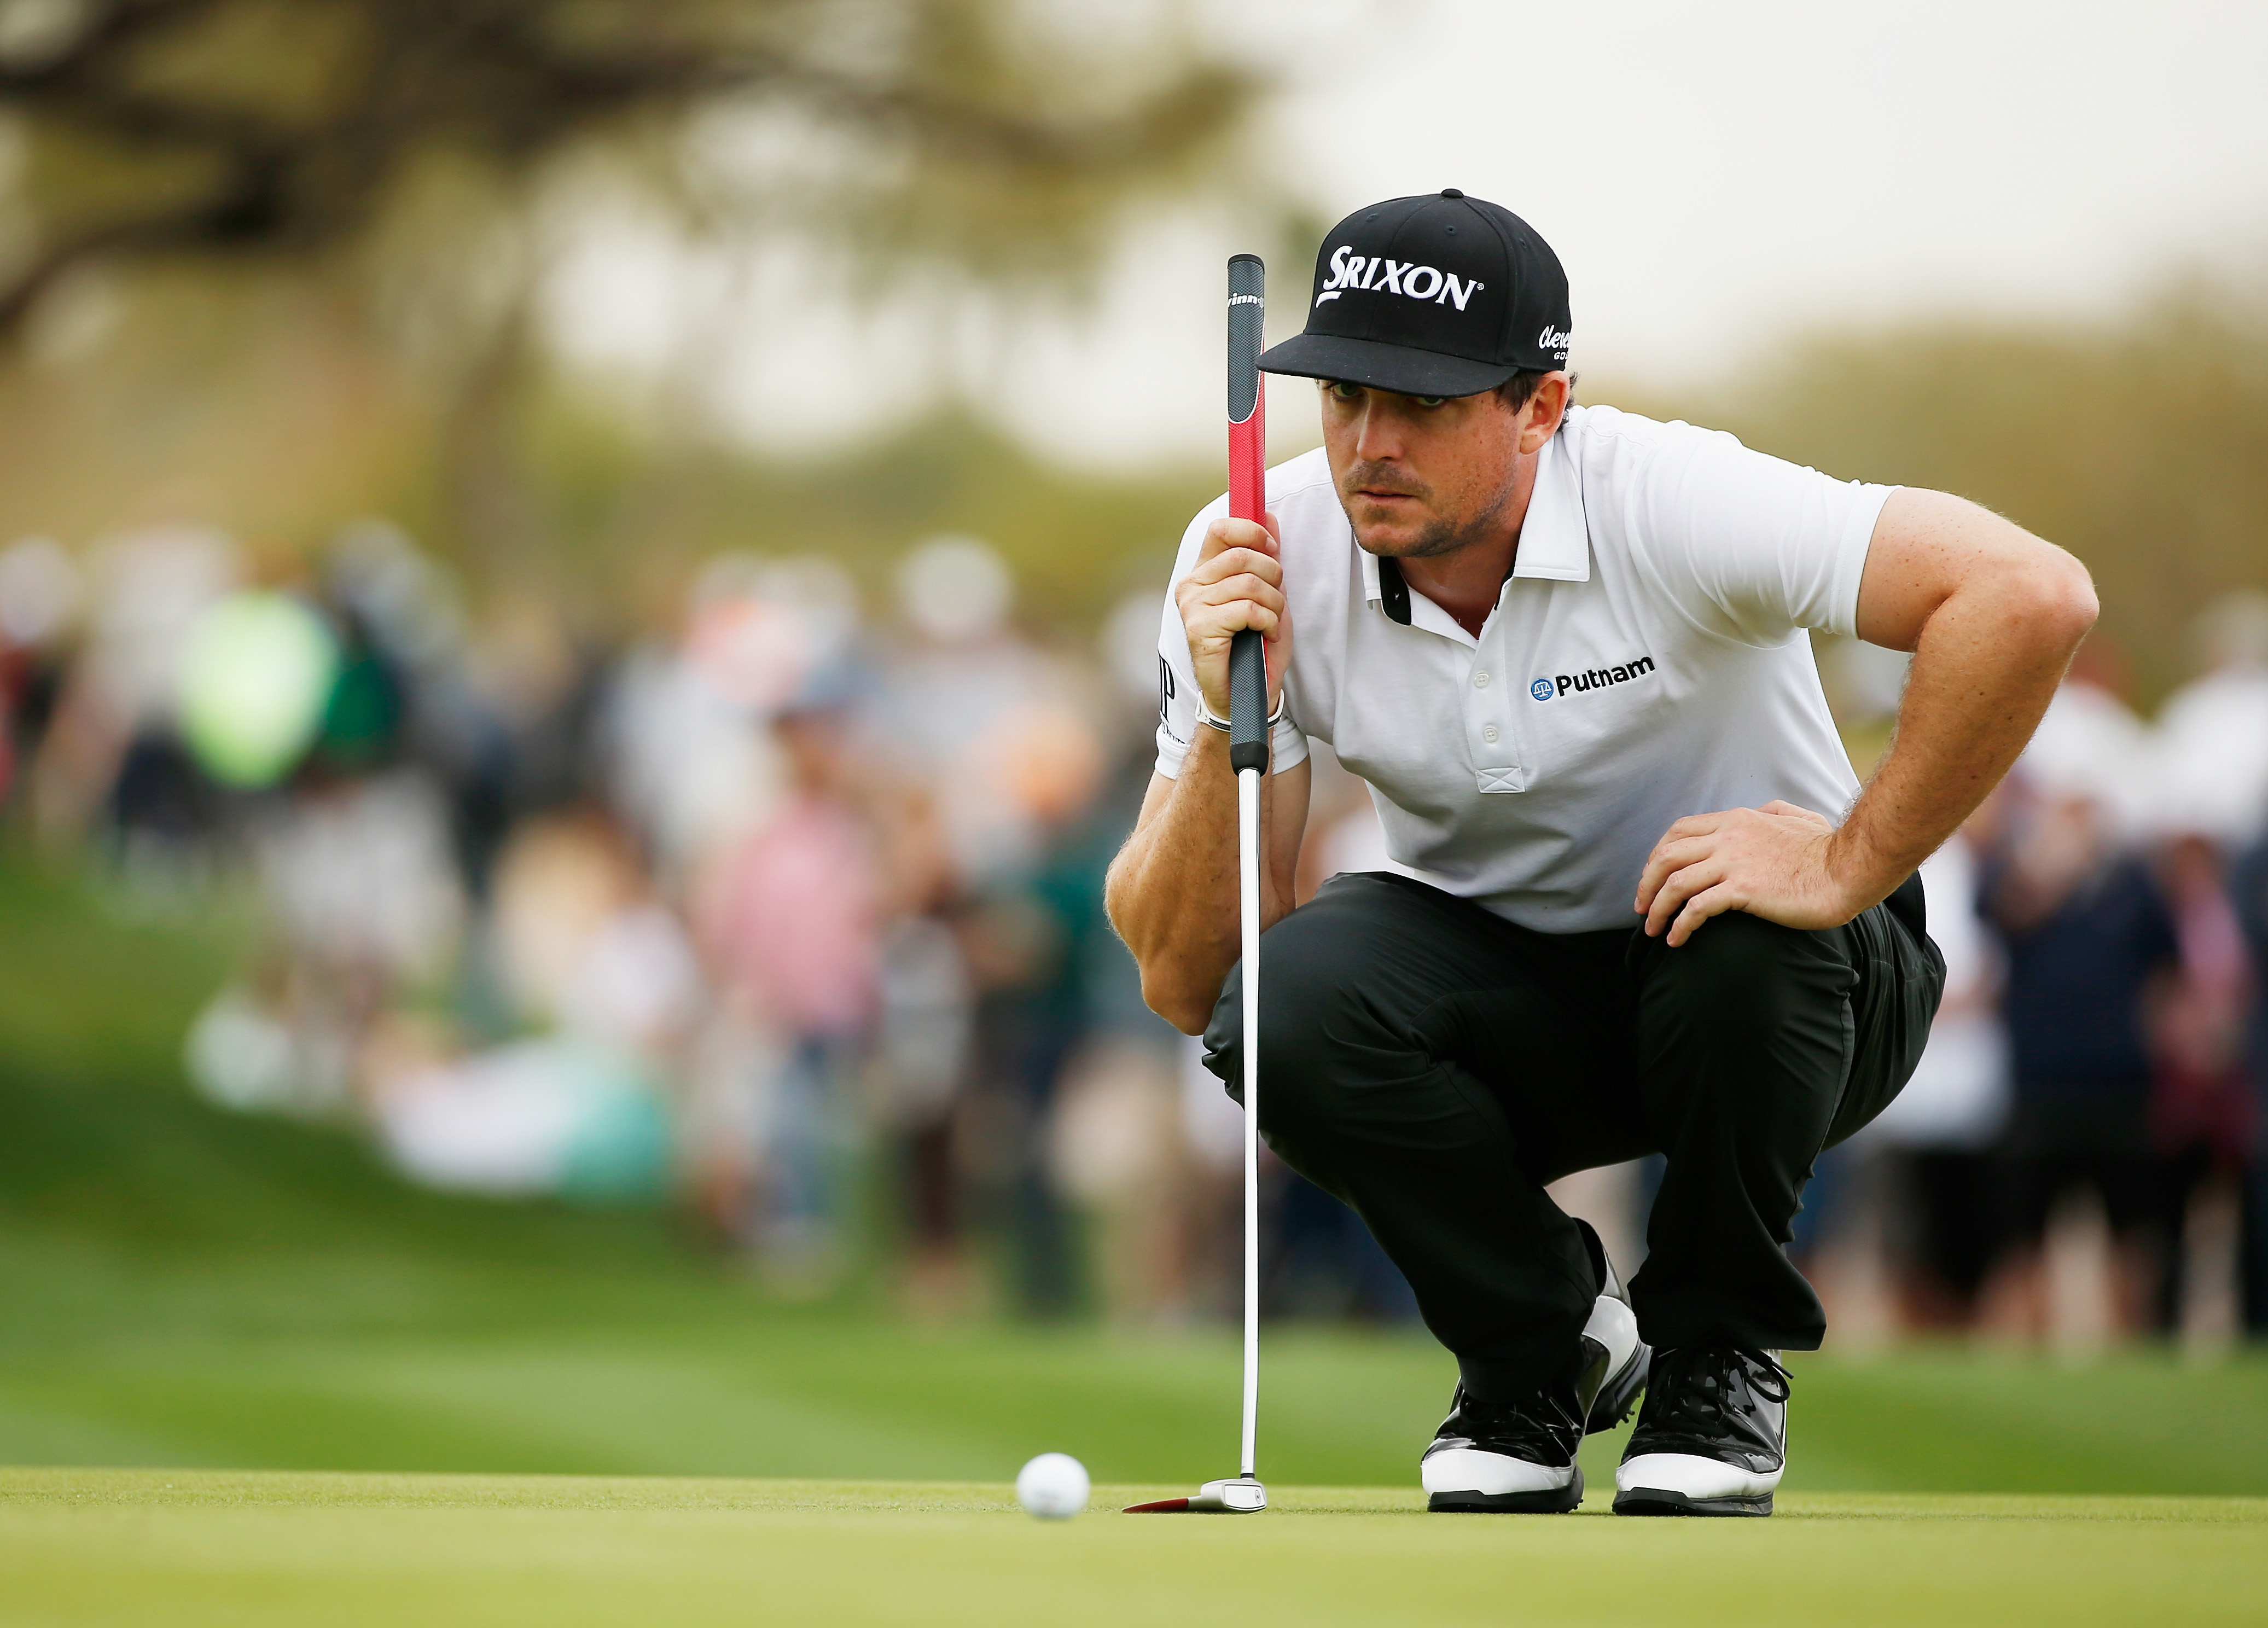 Keegan Bradley lines up a putt in his first round at the Phoenix Open (Photo: Getty Images)